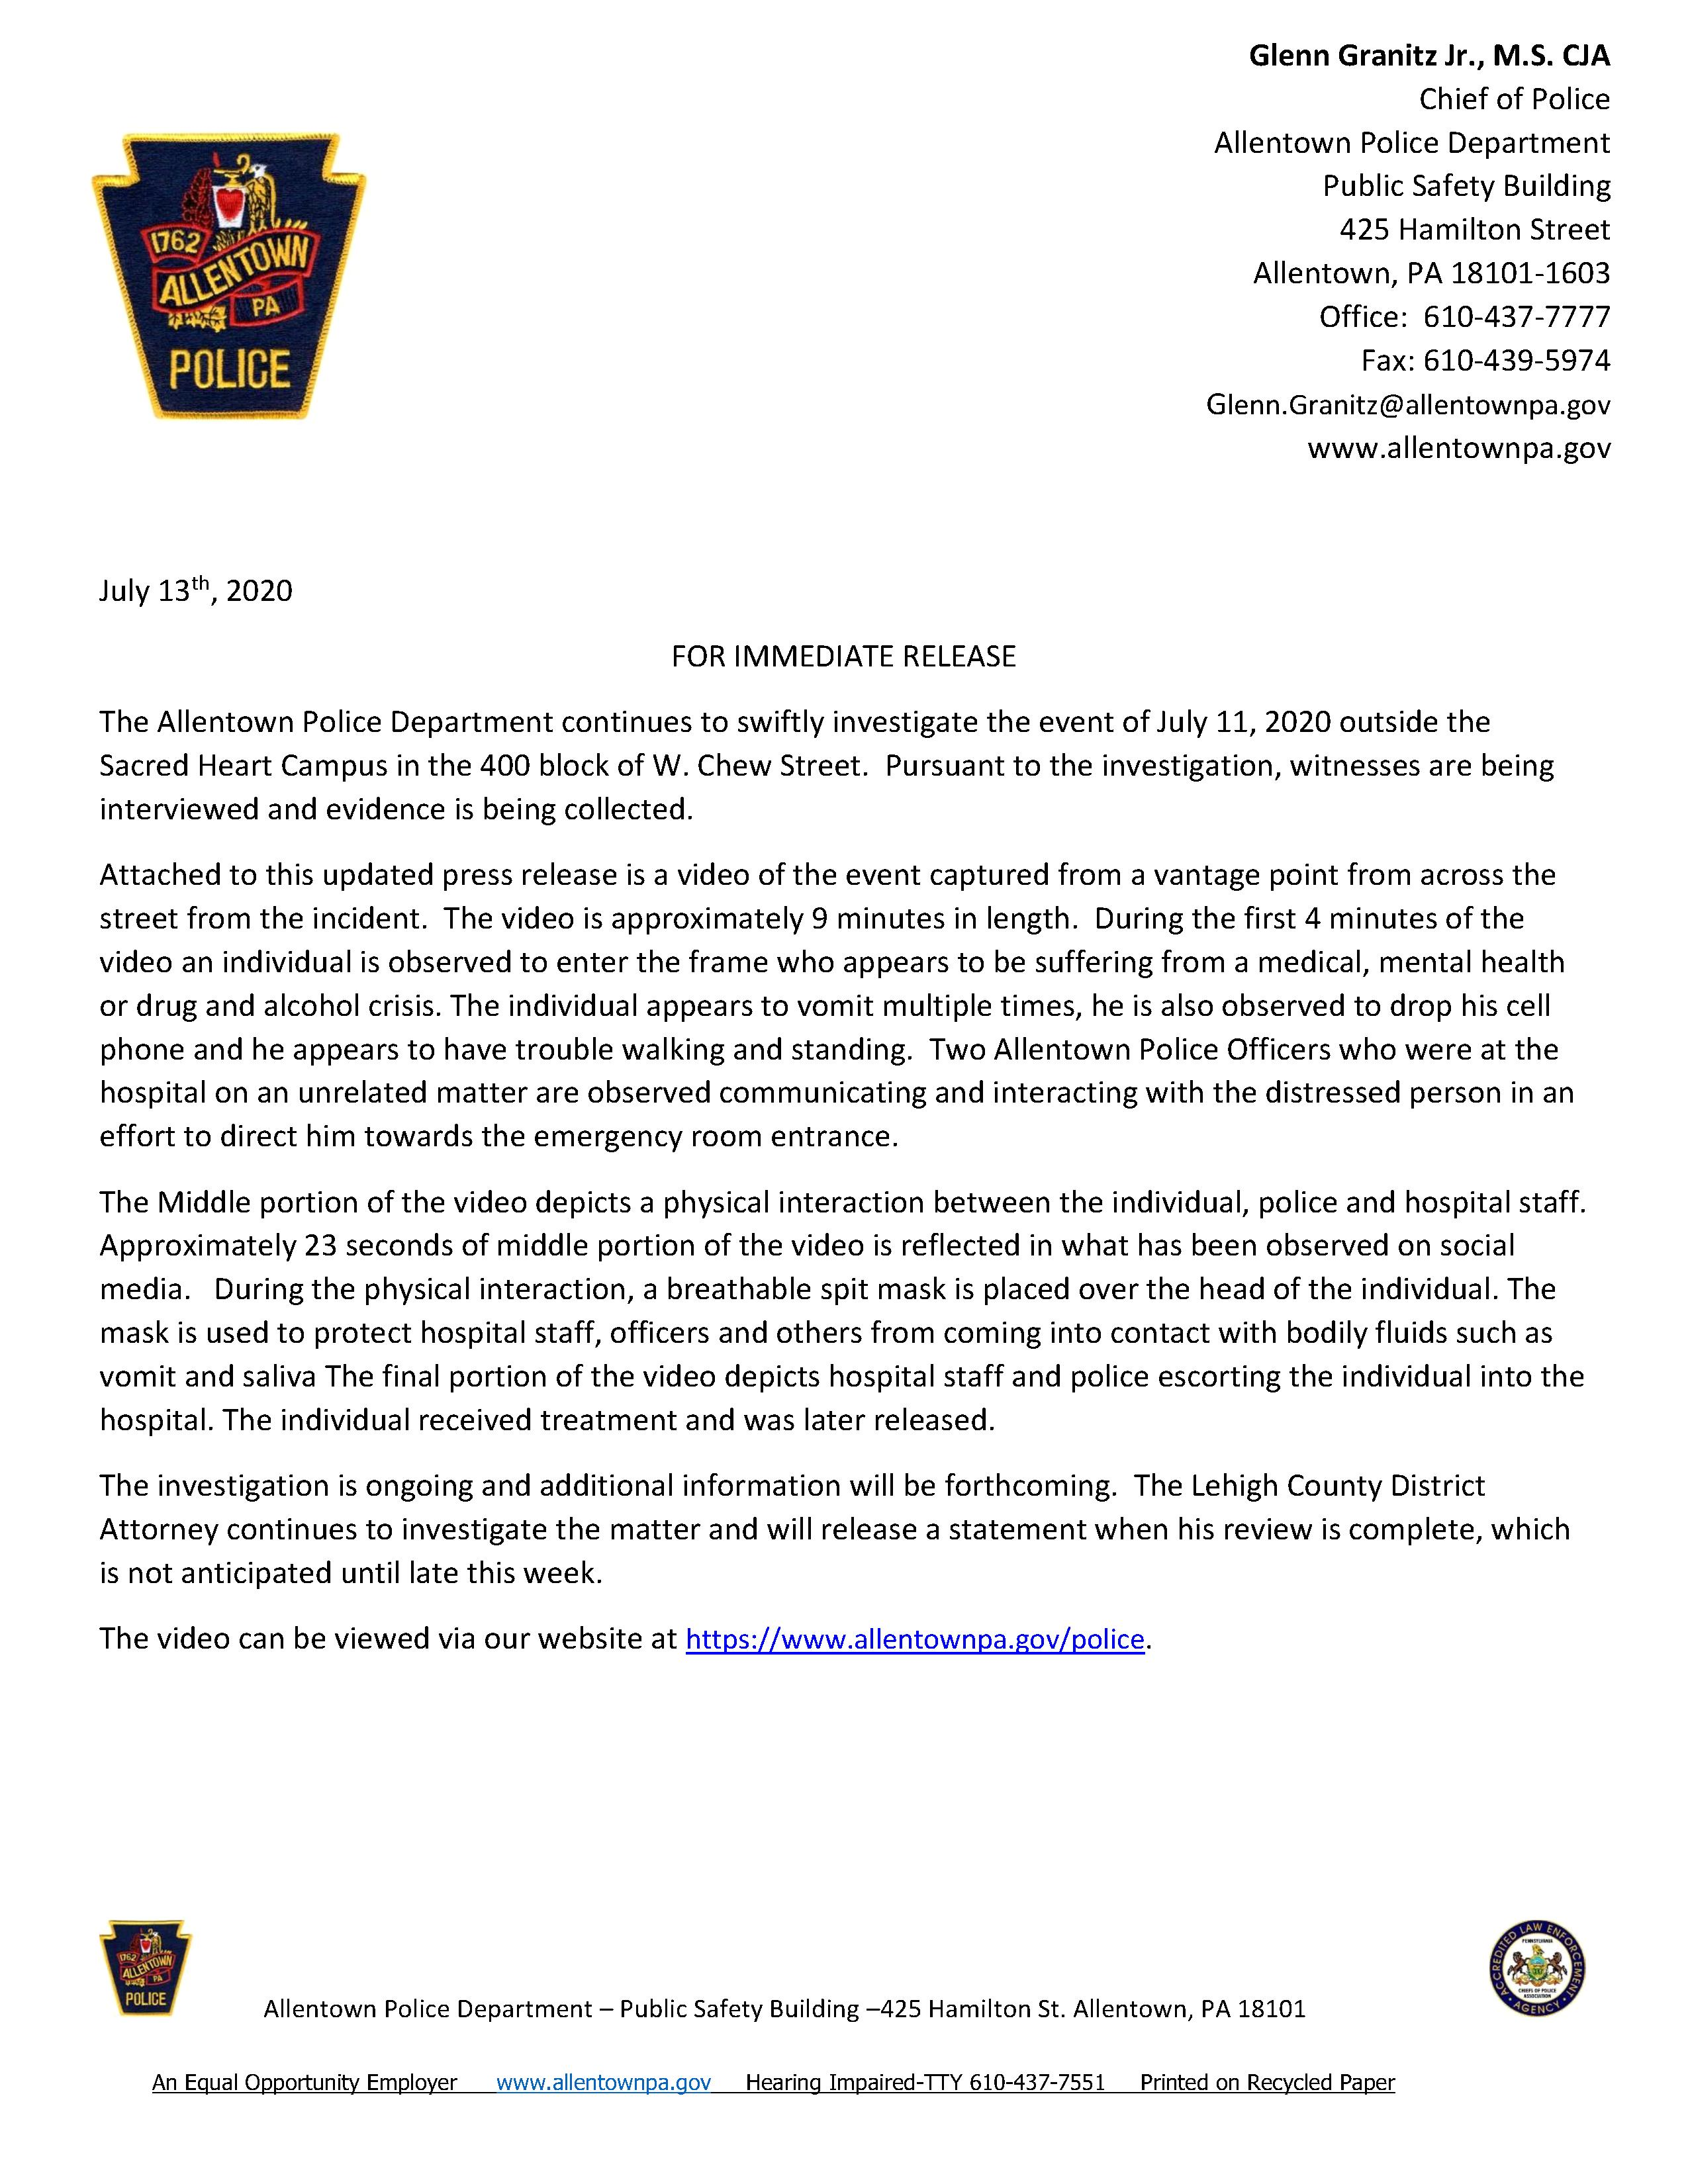 Information Release 7/13/2020